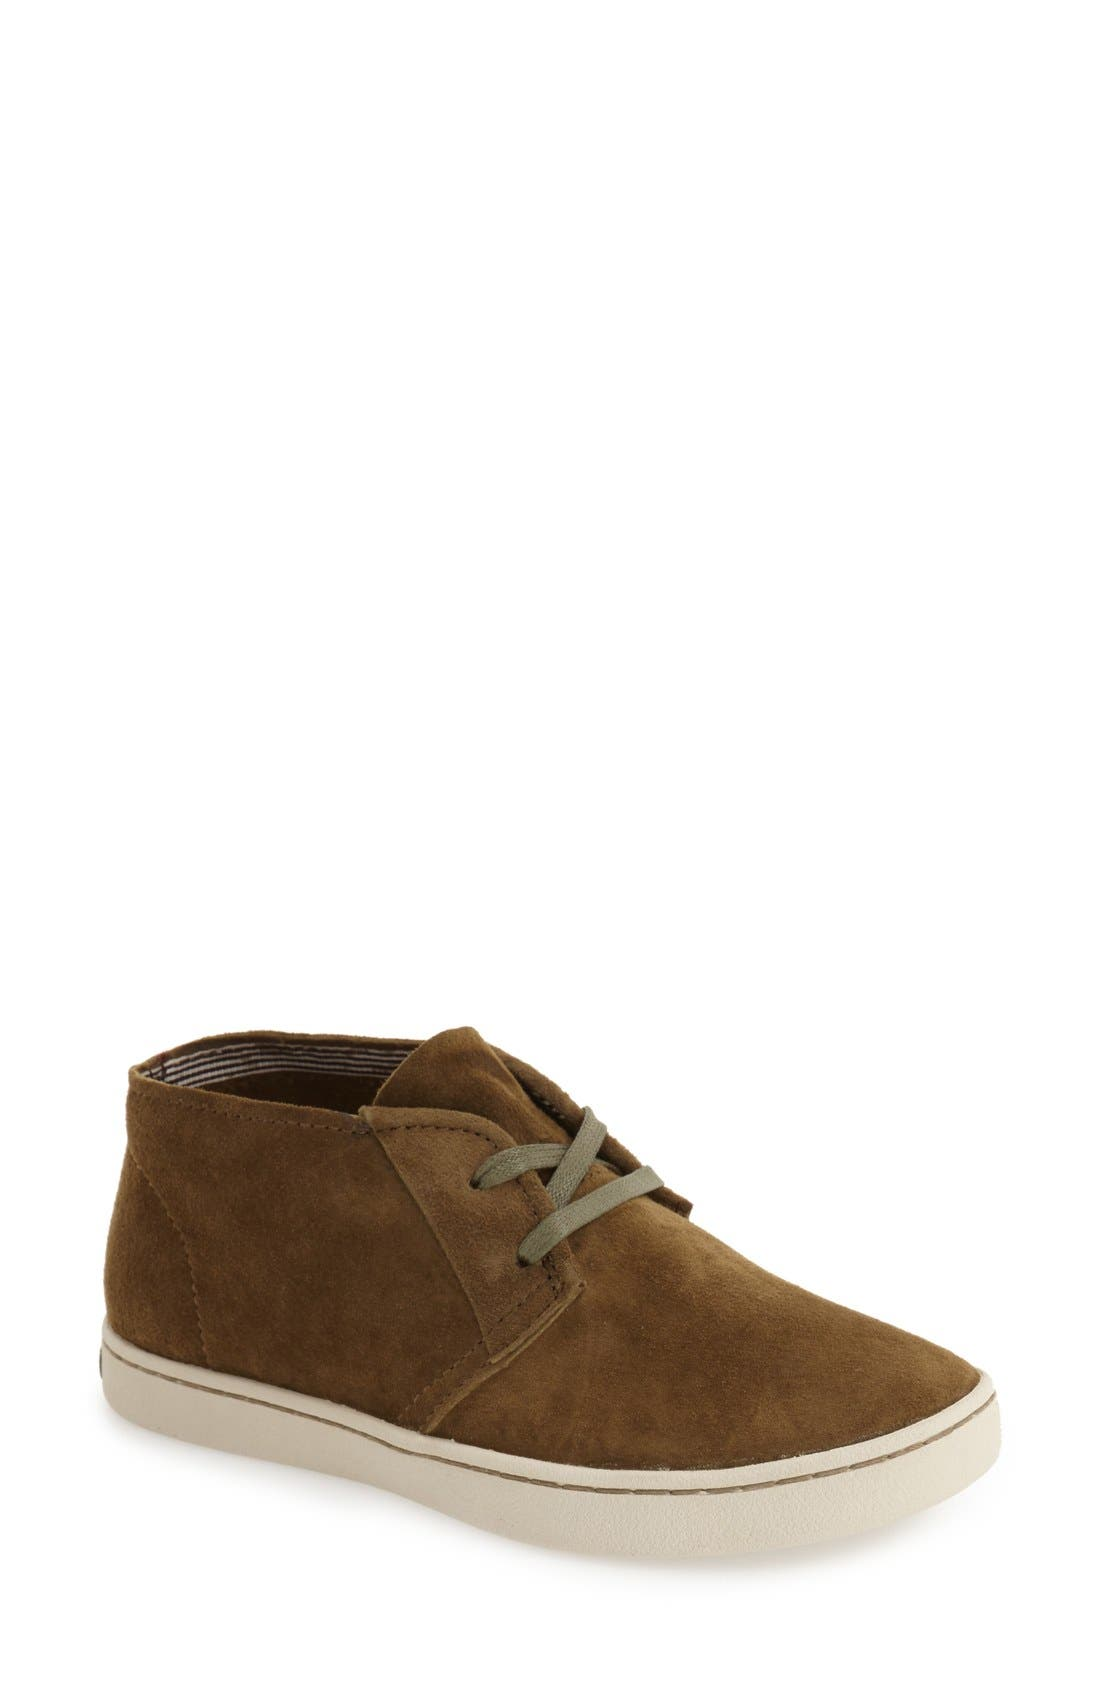 Alternate Image 1 Selected - Hush Puppies® 'Cille Gwen' Sneaker (Women)